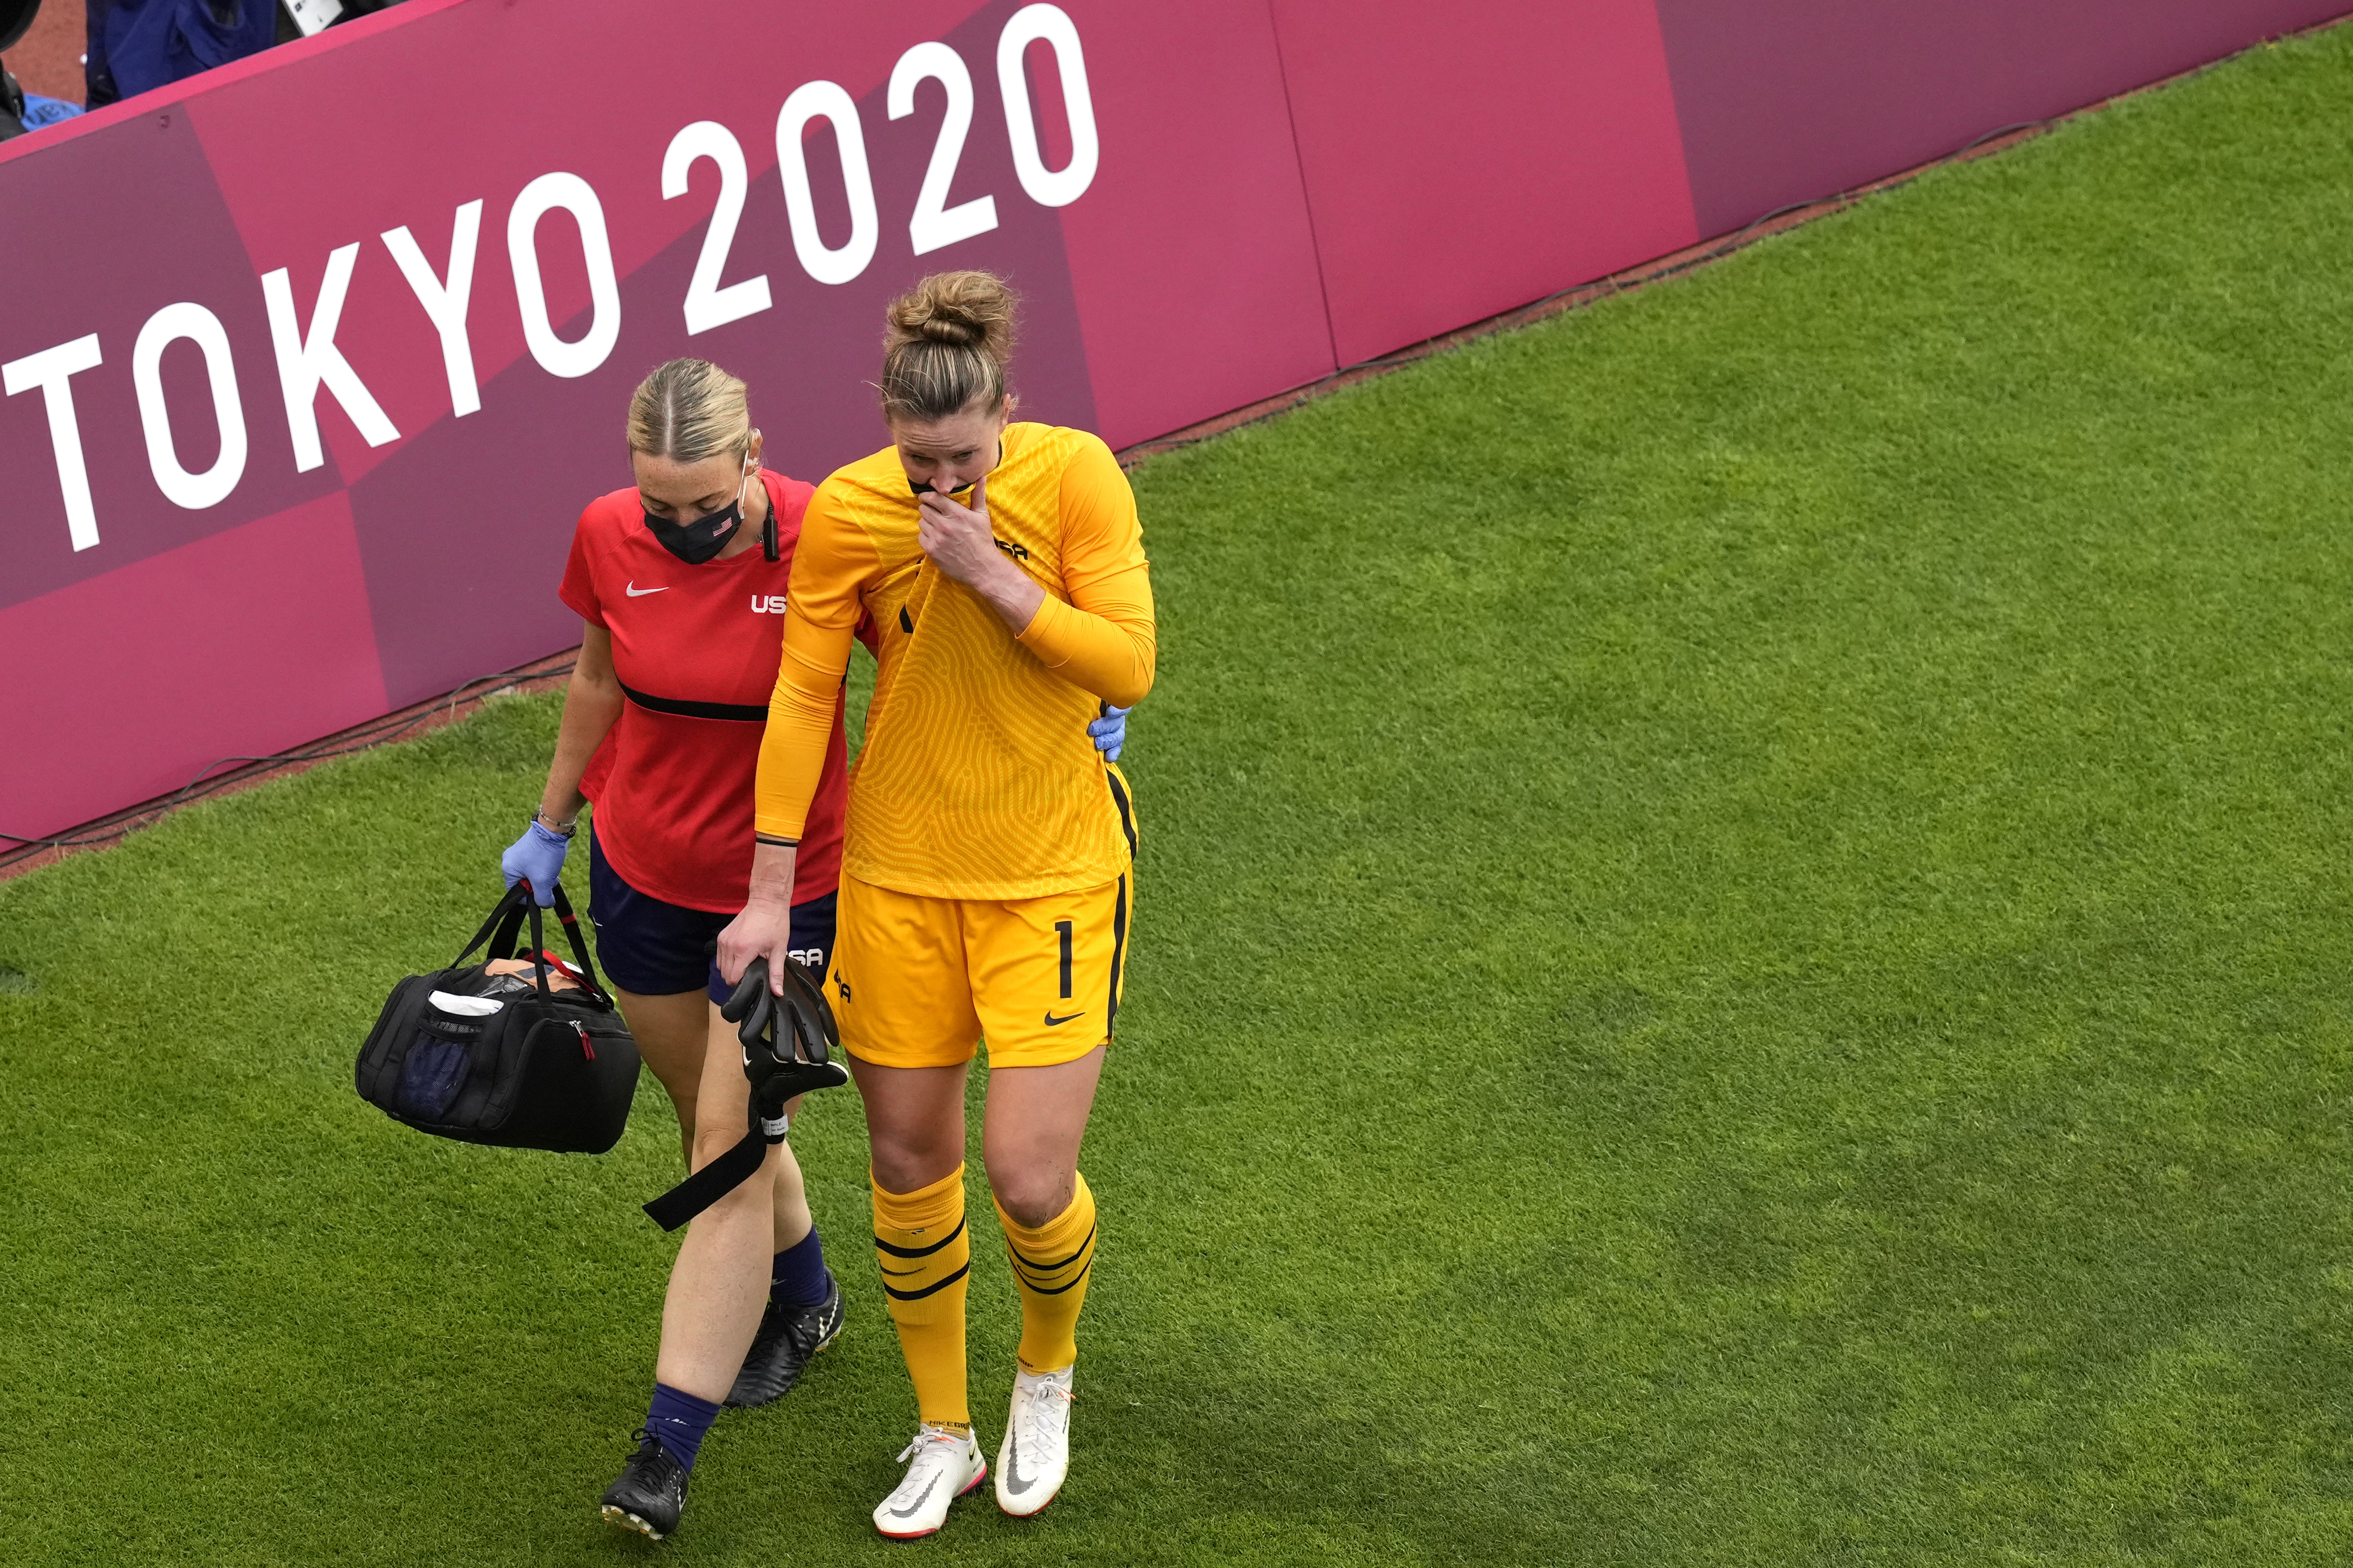 United States' goalkeeper Alyssa Naeher leaves the field after being injured during the semifinal match against Canada on Monday.